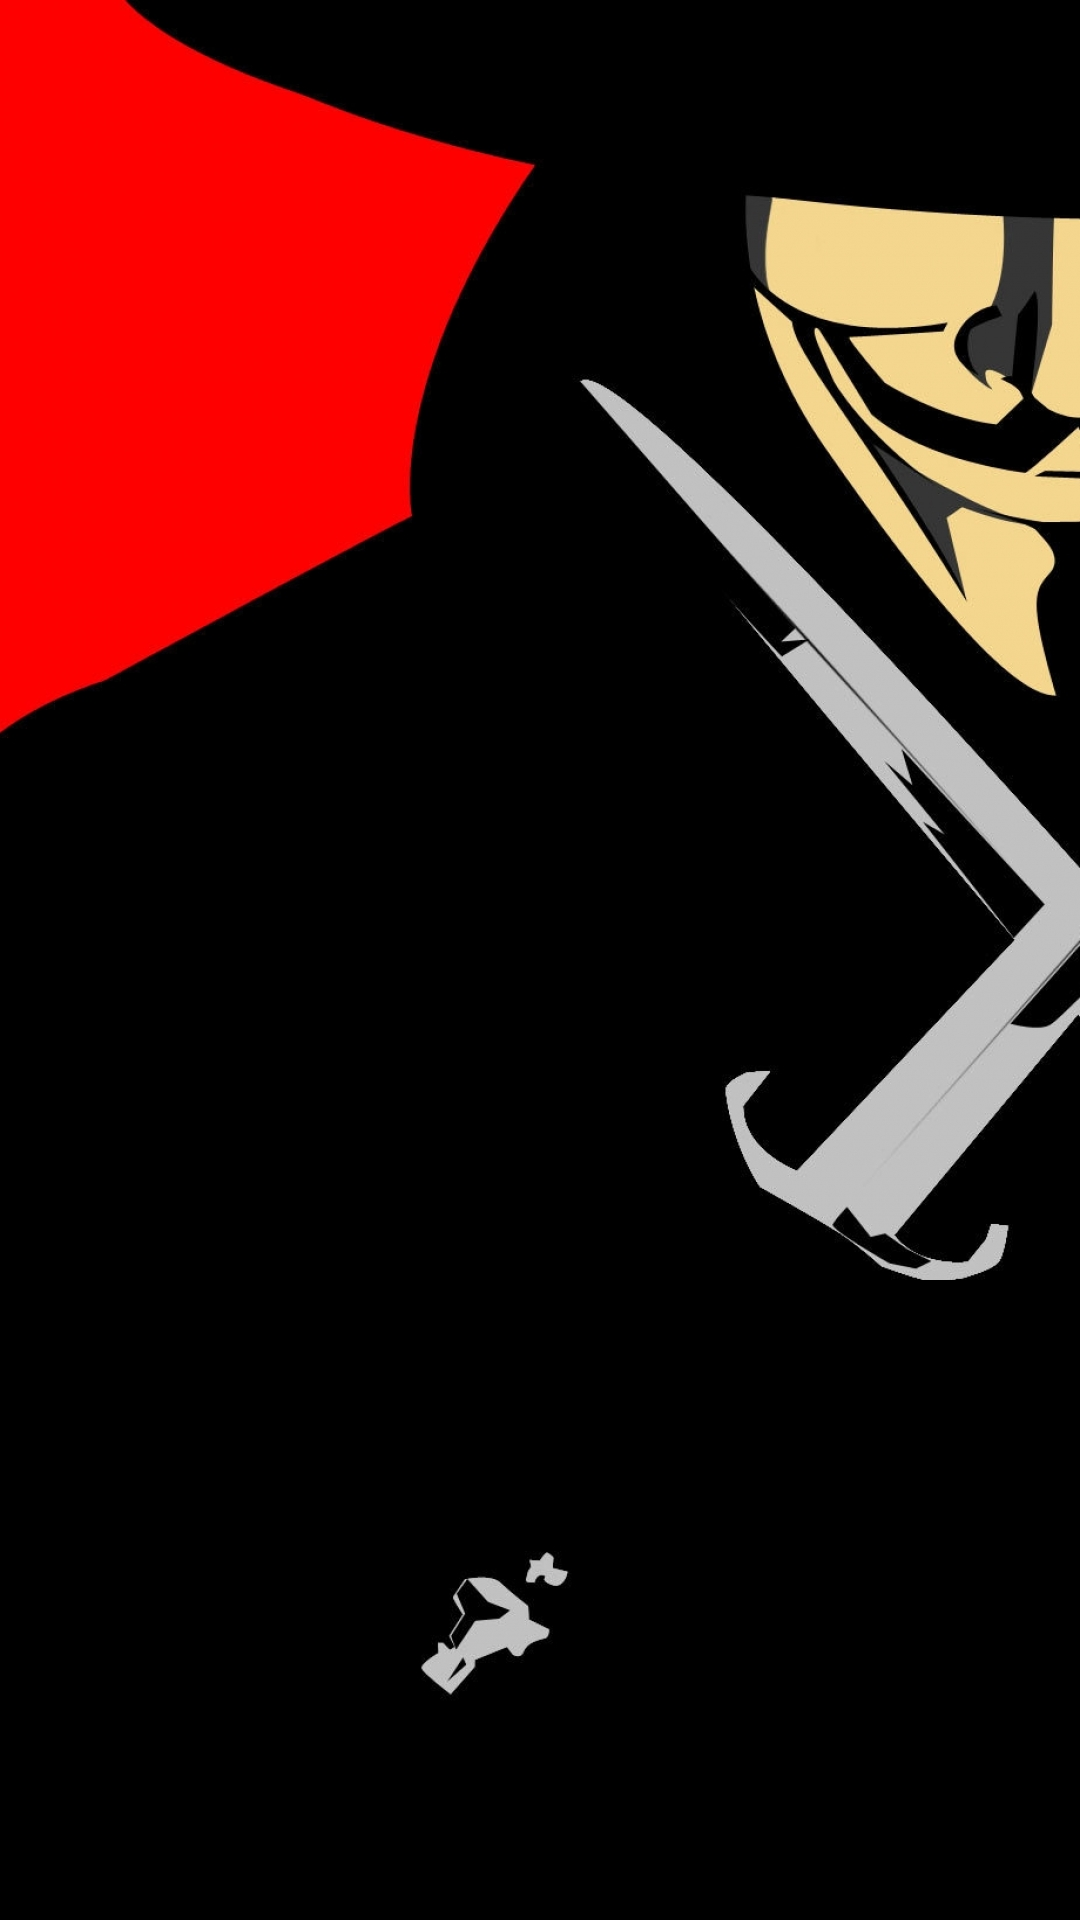 6 V For Vendetta Apple IPhone 750x1334 Wallpapers